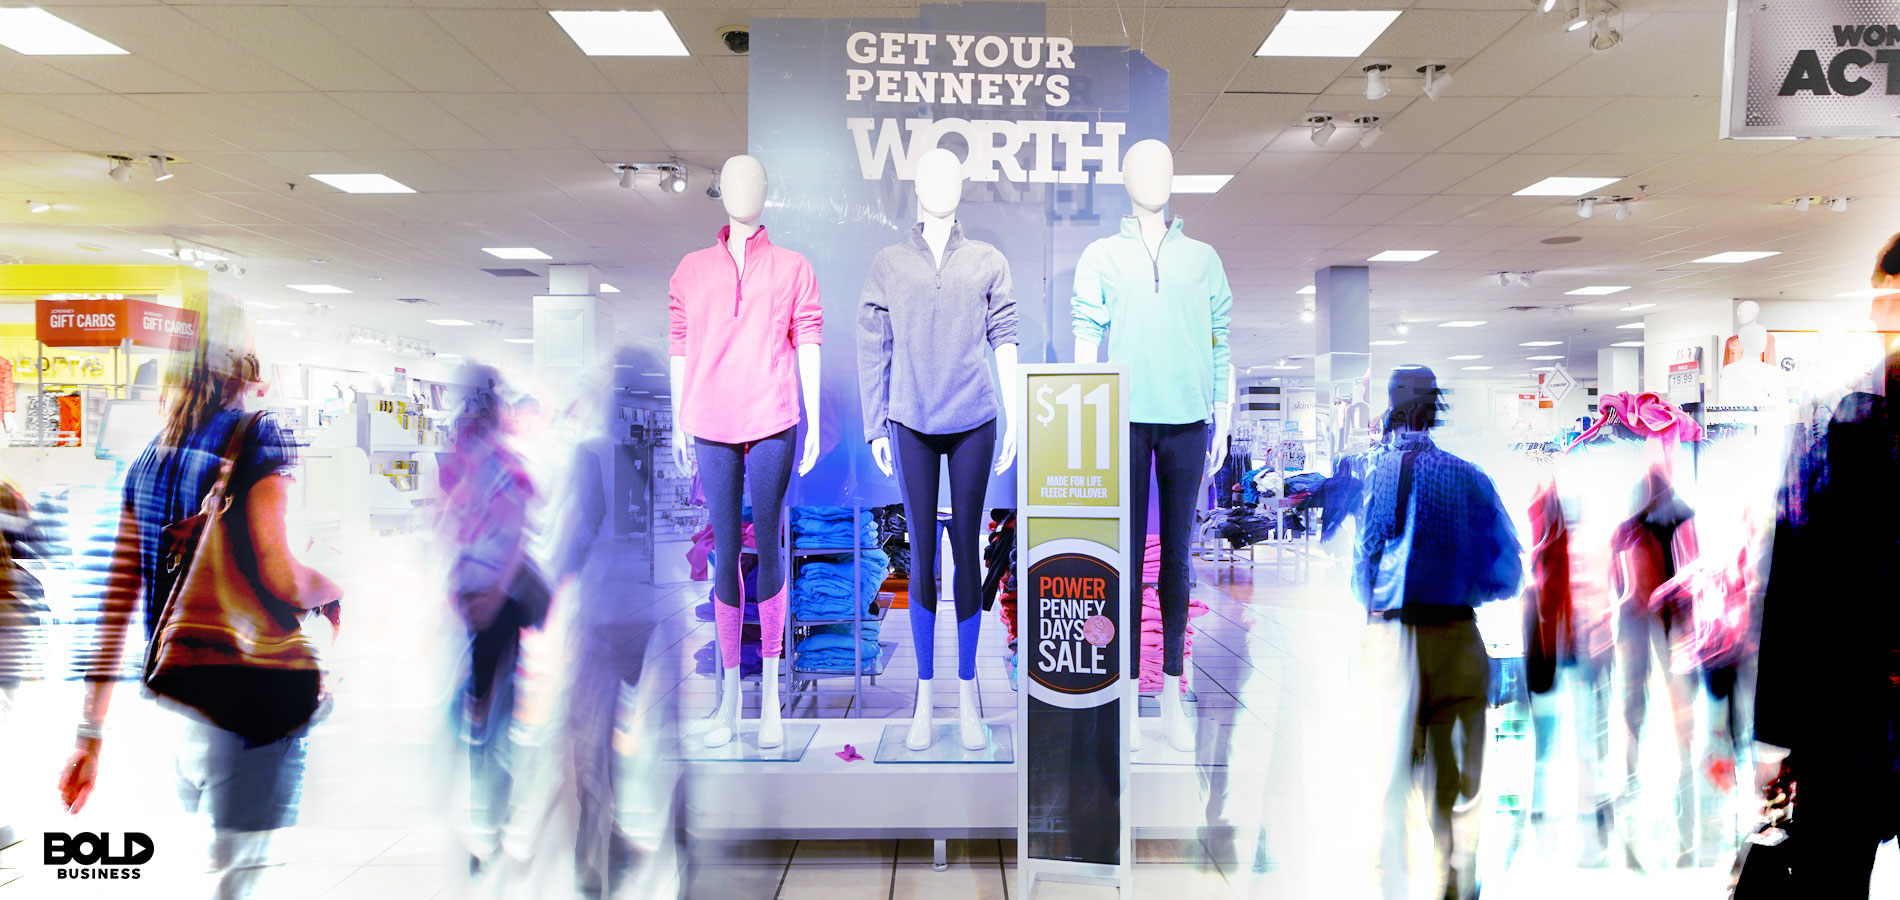 jcpenney mannequins and moving people